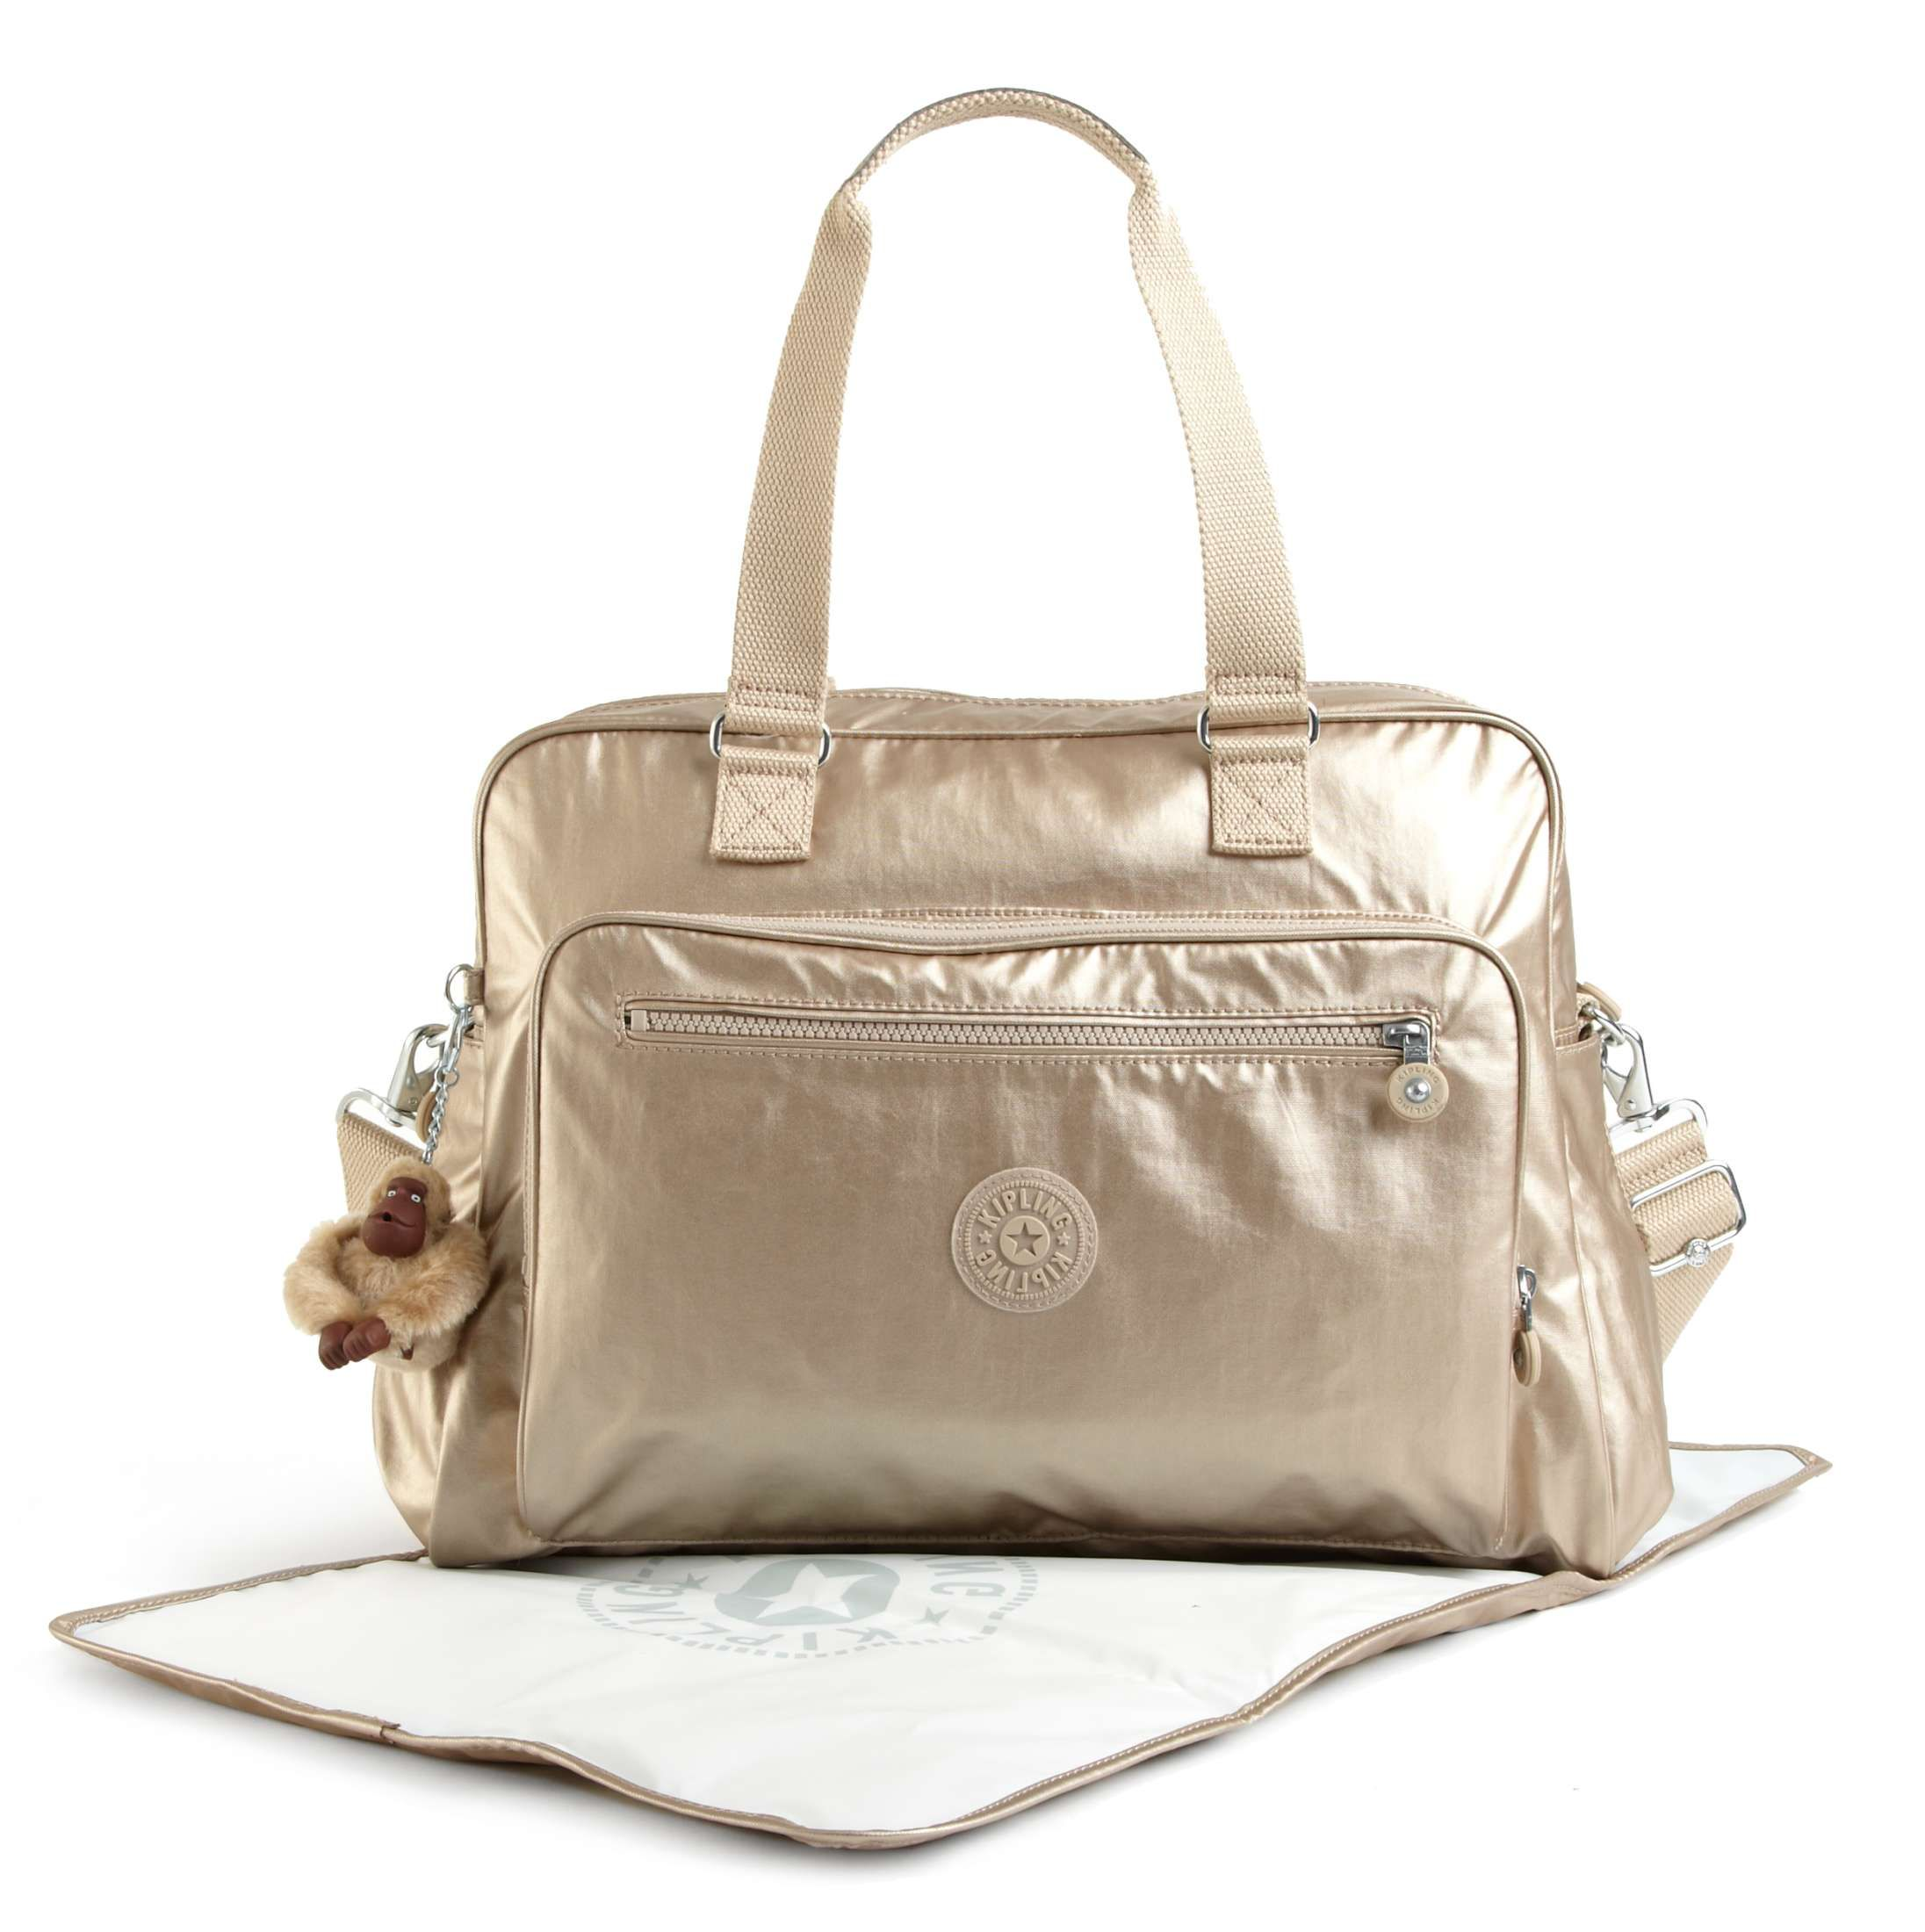 0c9c8246c Alanna Metallic Diaper Bag | Baby shower!!! | Bolsas kipling, Bolsa ...